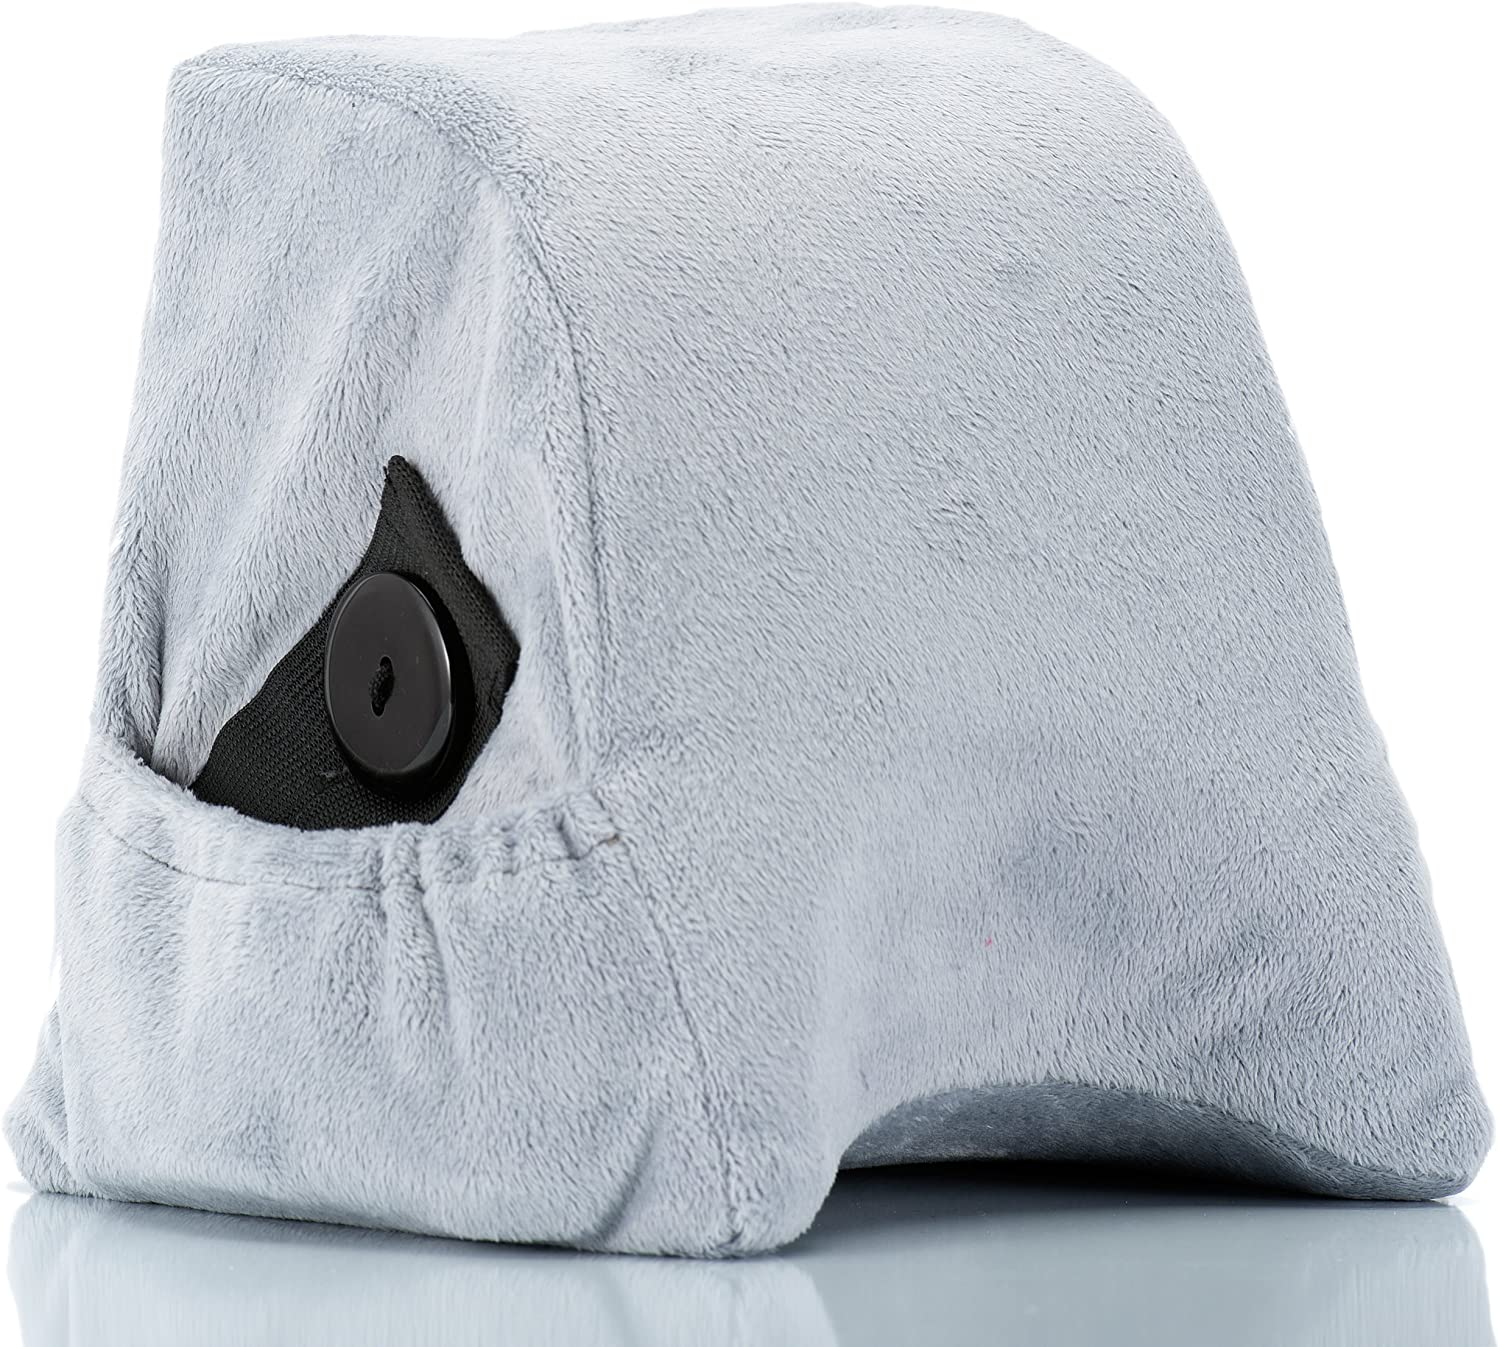 Travel Pillow by Travel Heads | Comfortable Memory Foam Neck Pillow, Best Shoulder Wedge Pillow for Airplanes & Cars (Grey)